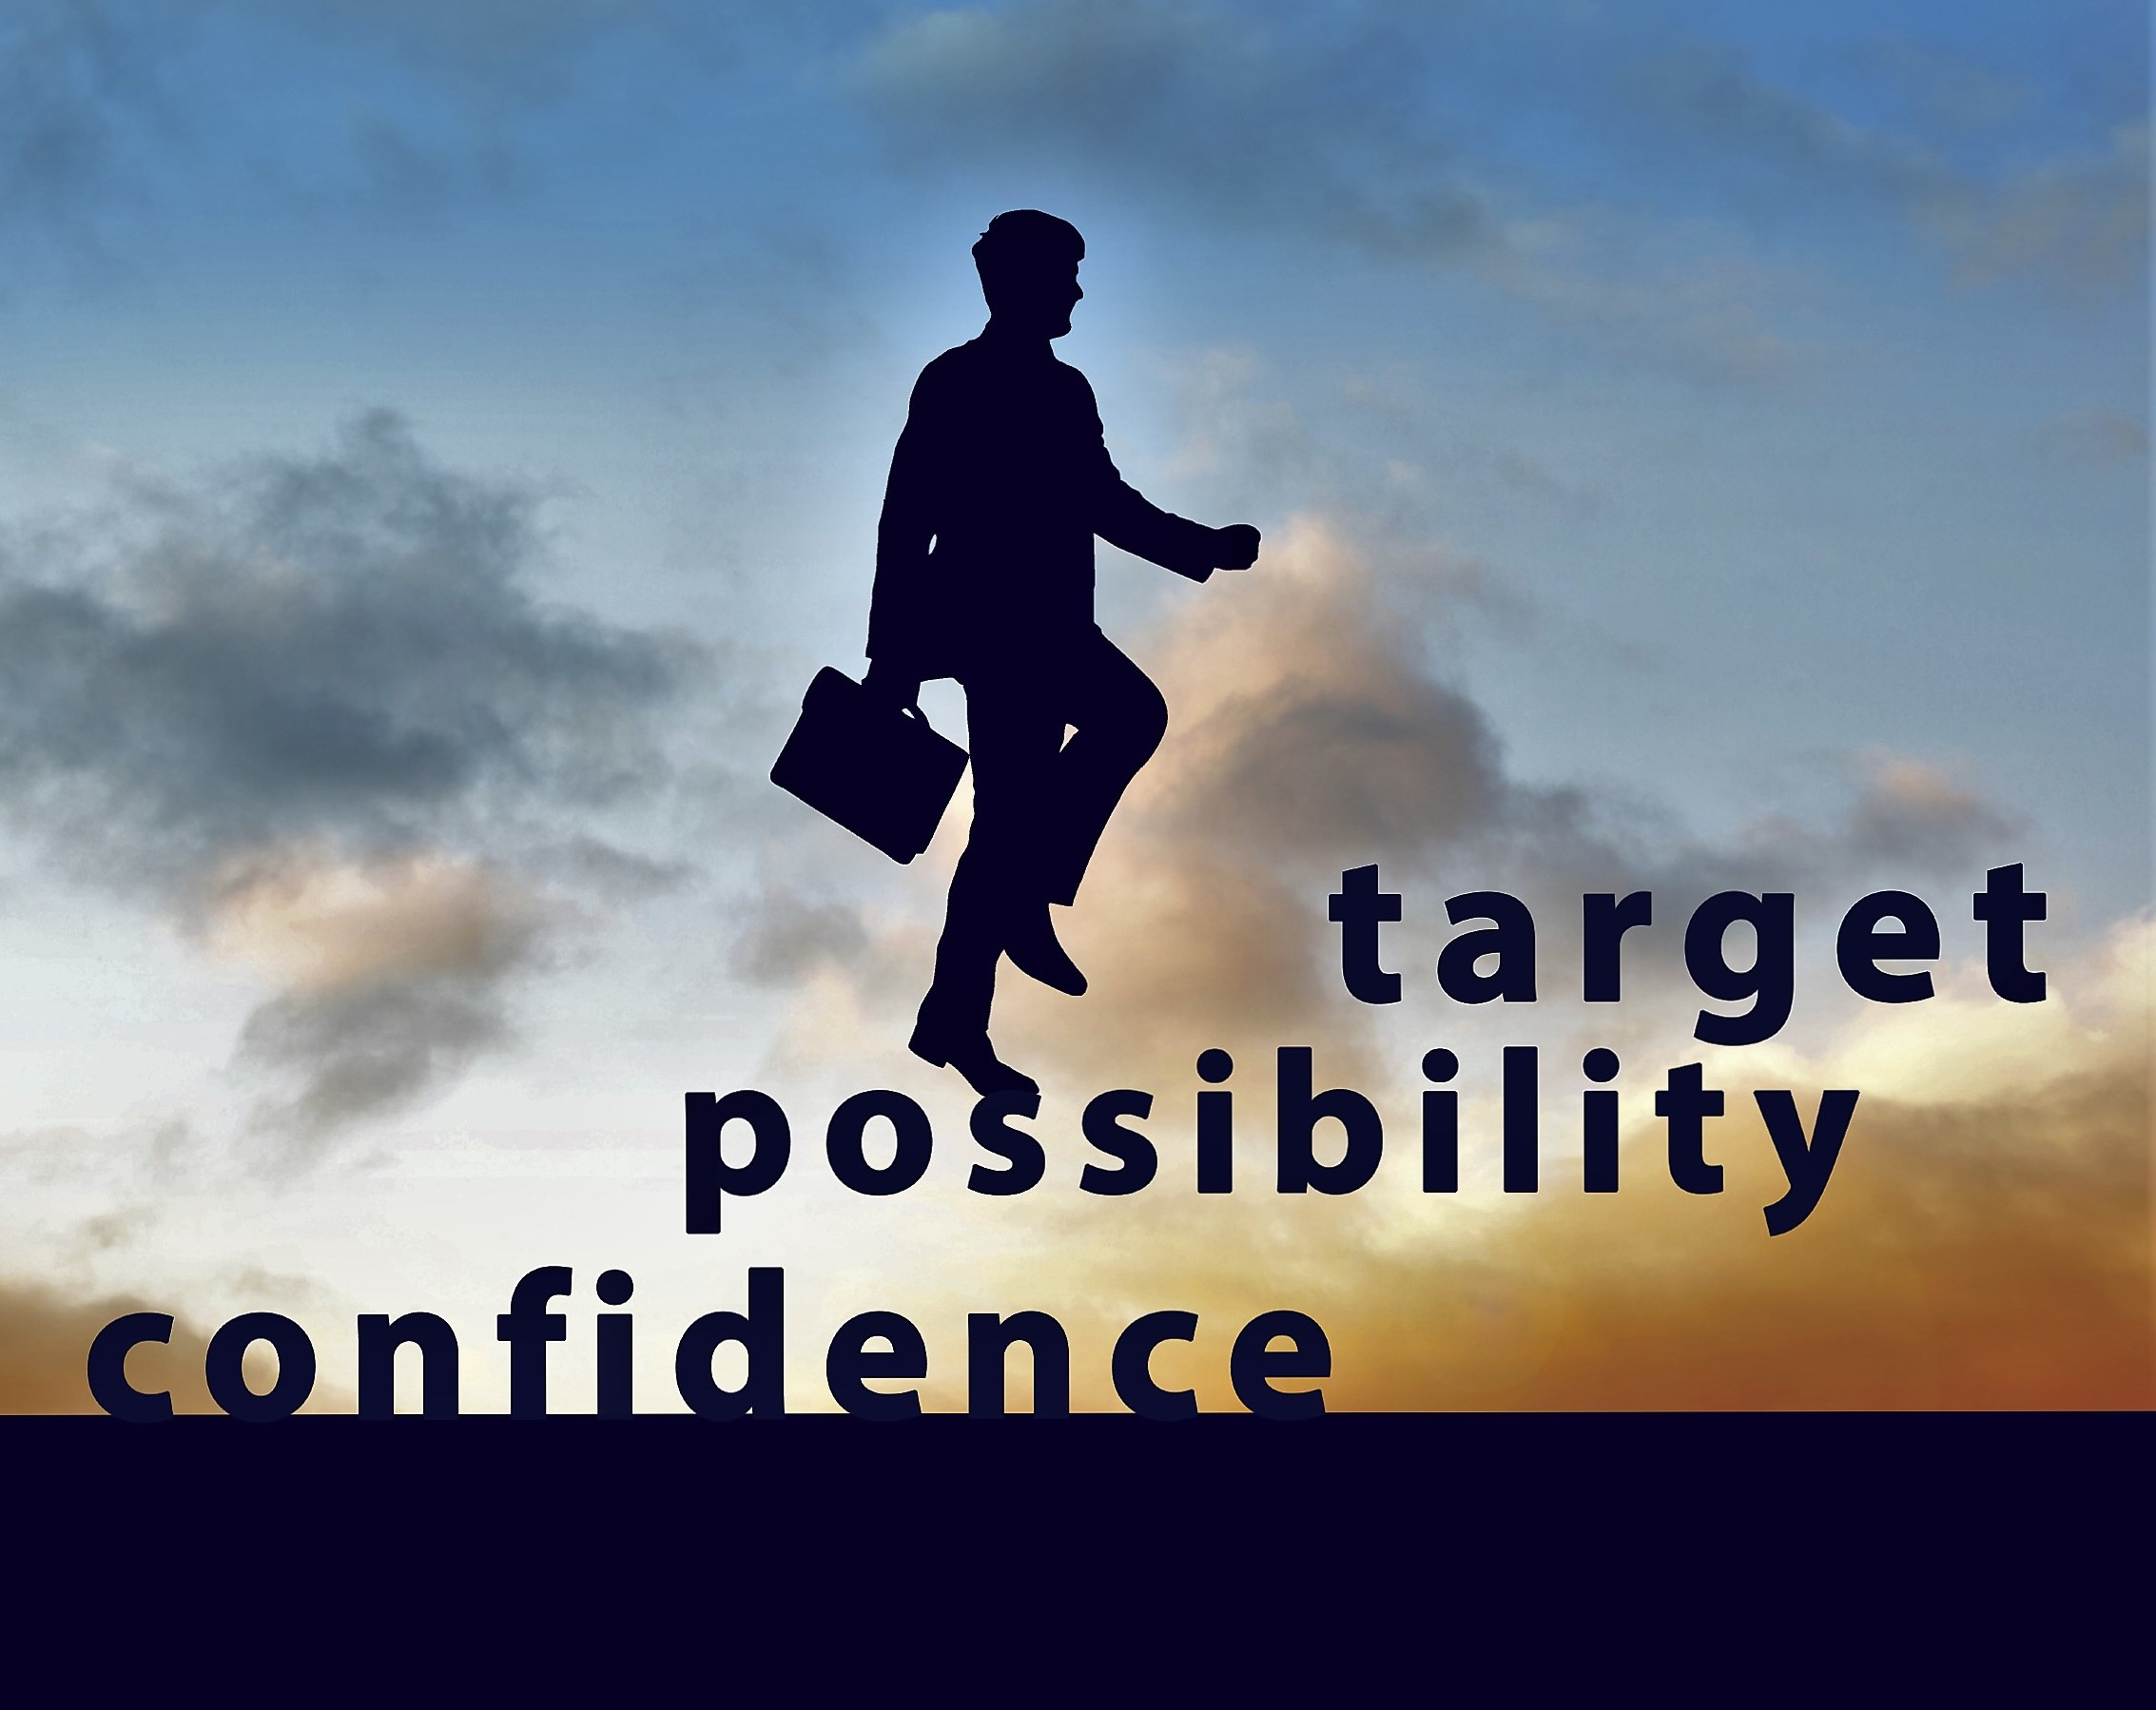 Image of confident businessman with briefcase walking up to target